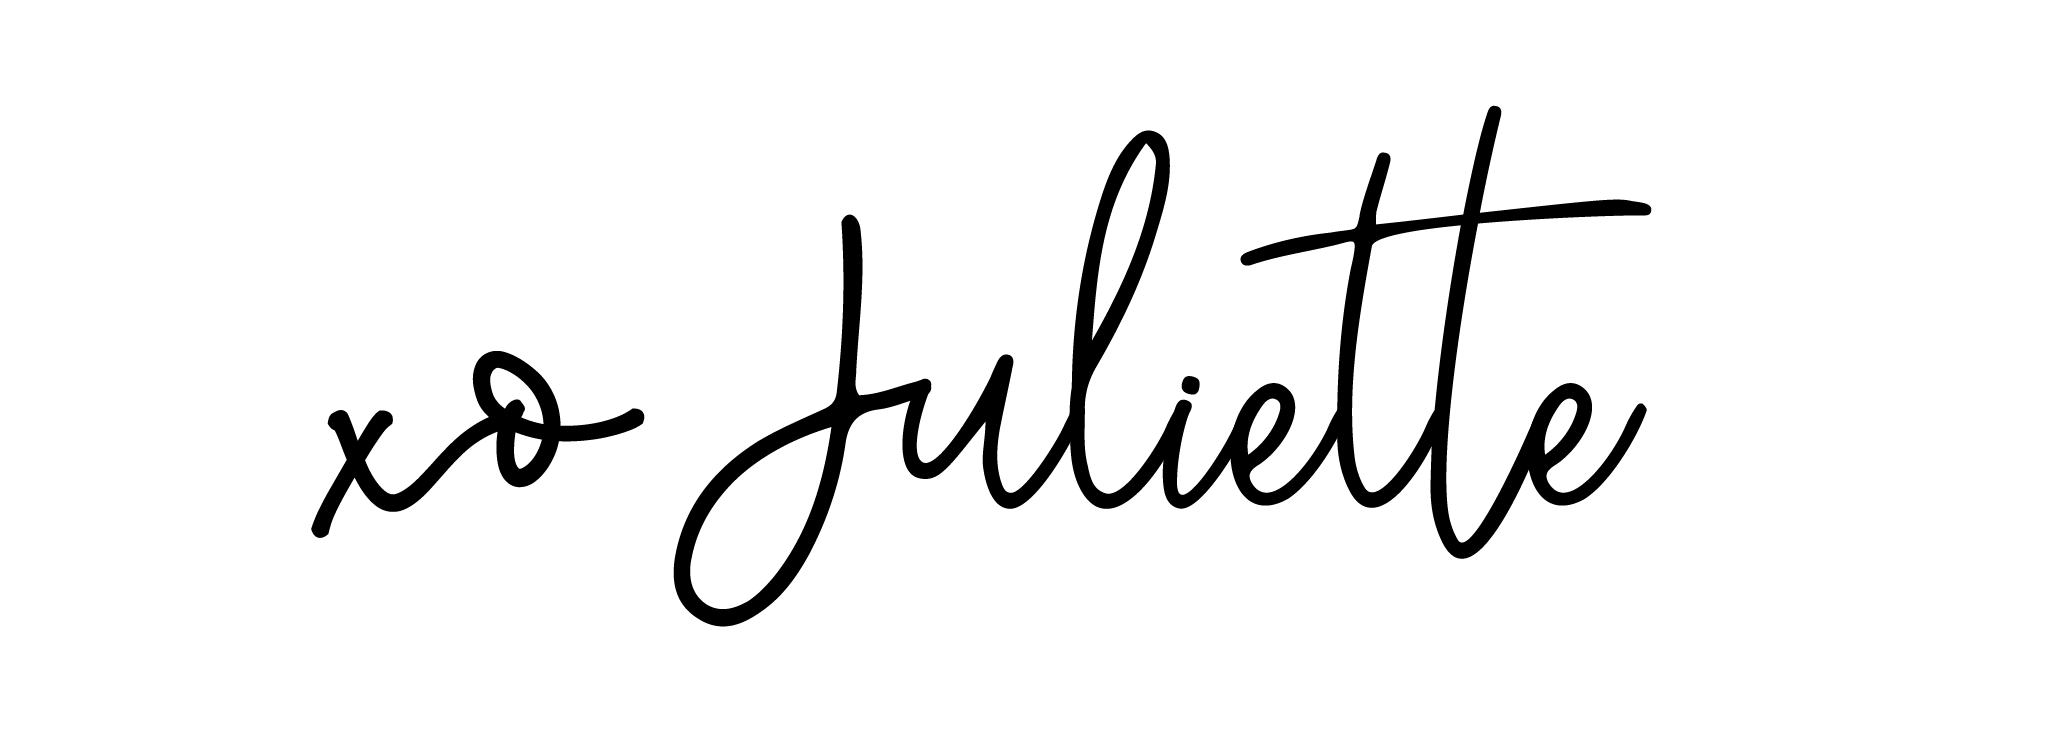 JulietteSak_signature.png